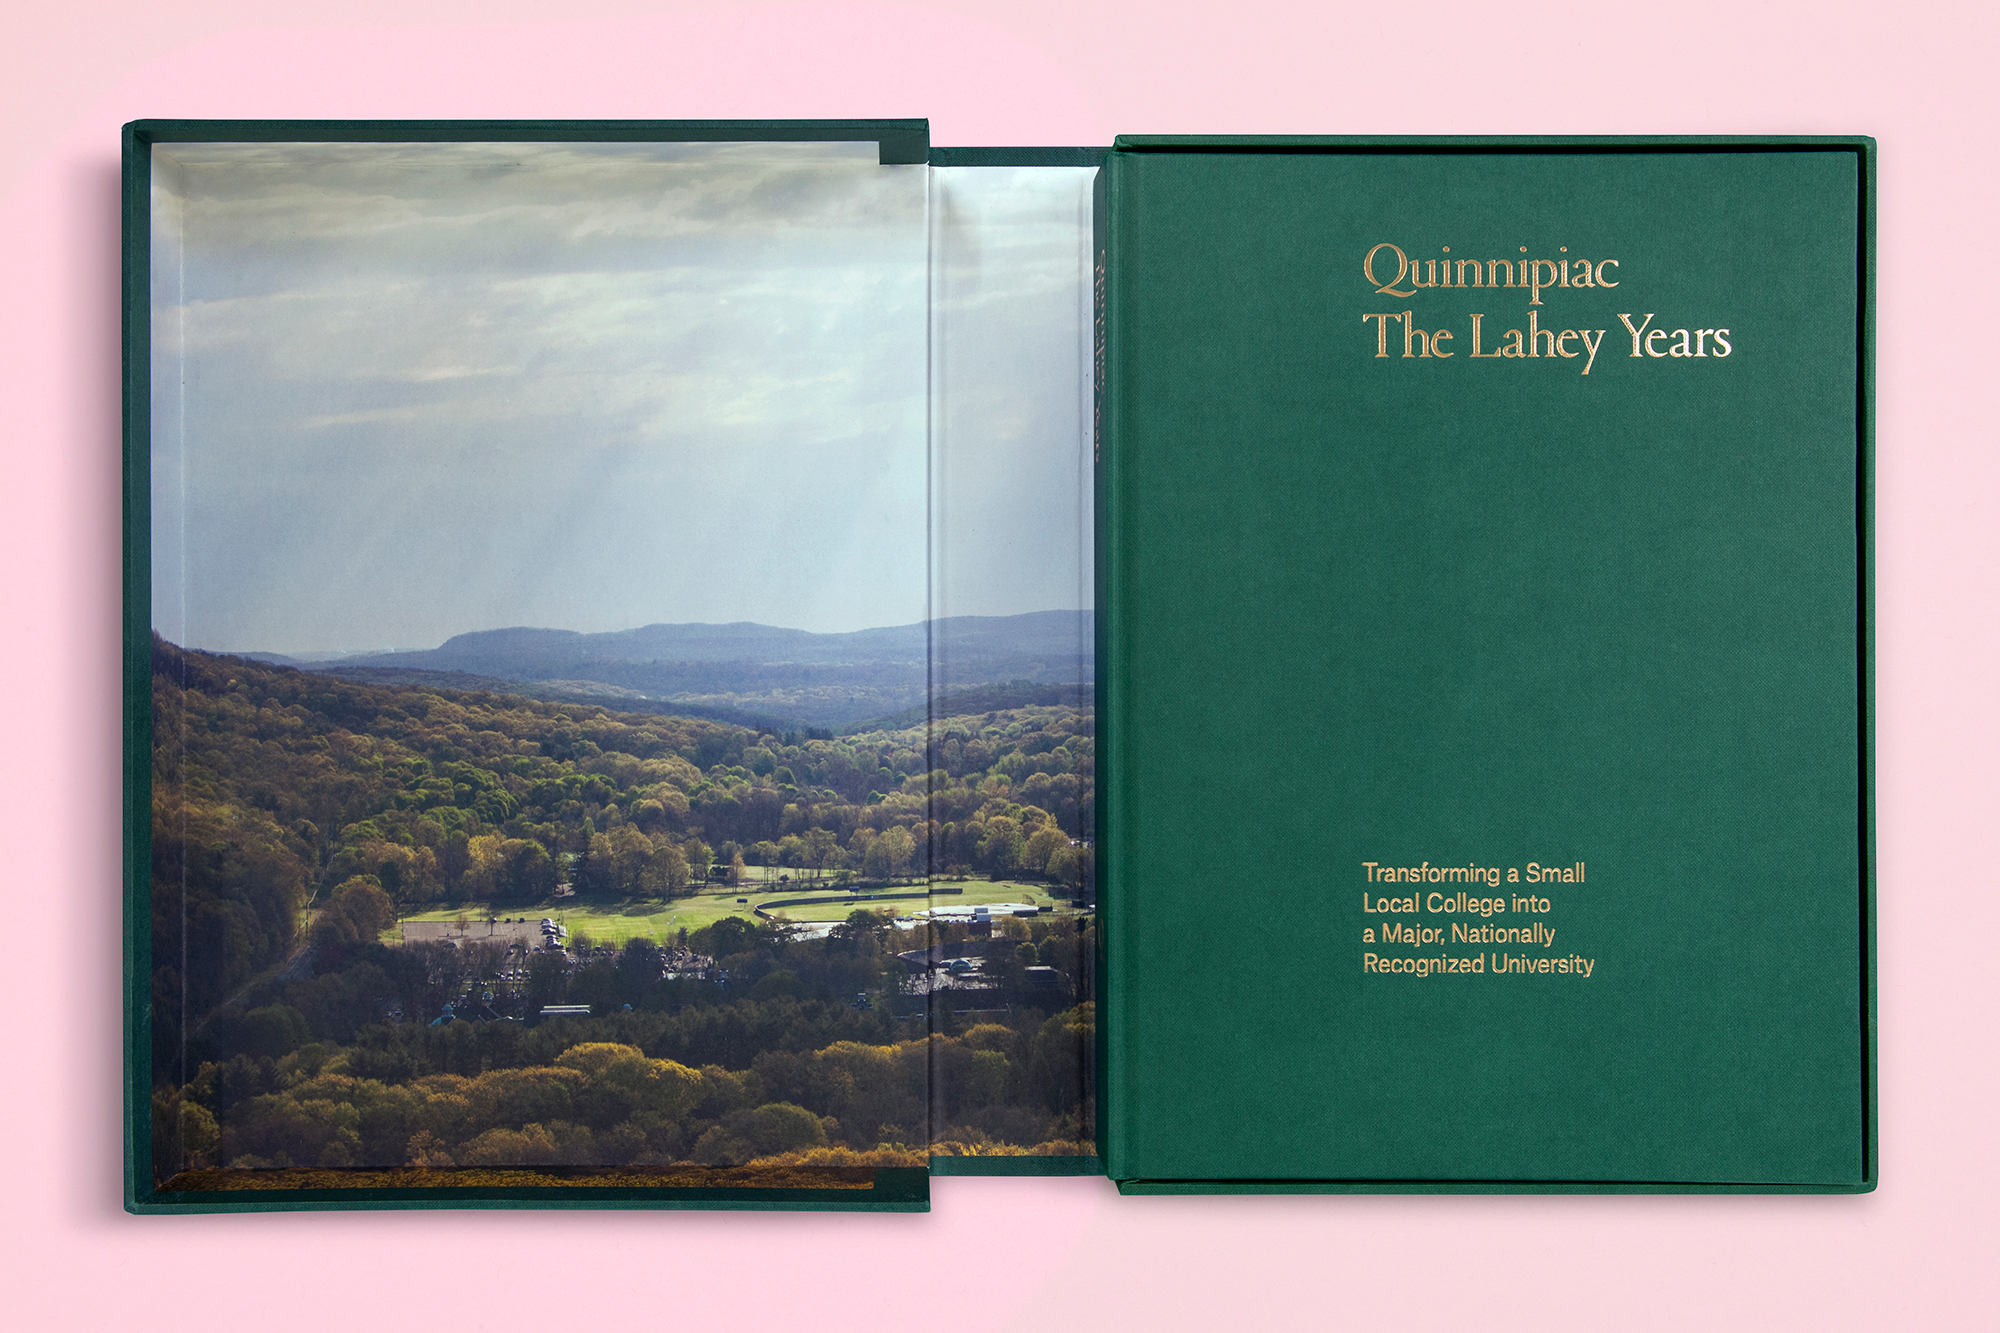 Cover image: Quinnipiac: The Lahey Years